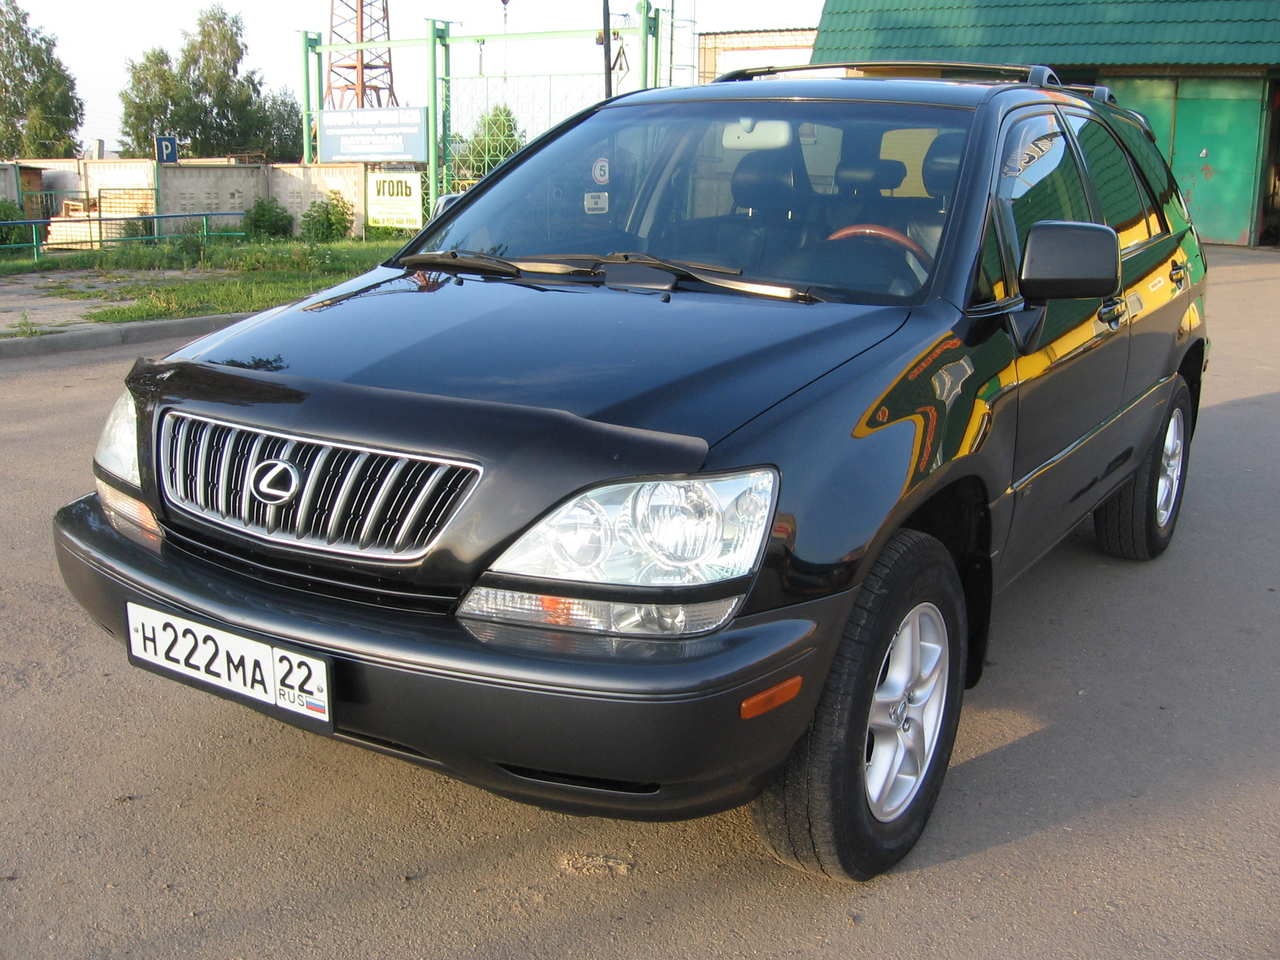 2002 lexus rx300 pictures gasoline automatic for sale. Black Bedroom Furniture Sets. Home Design Ideas